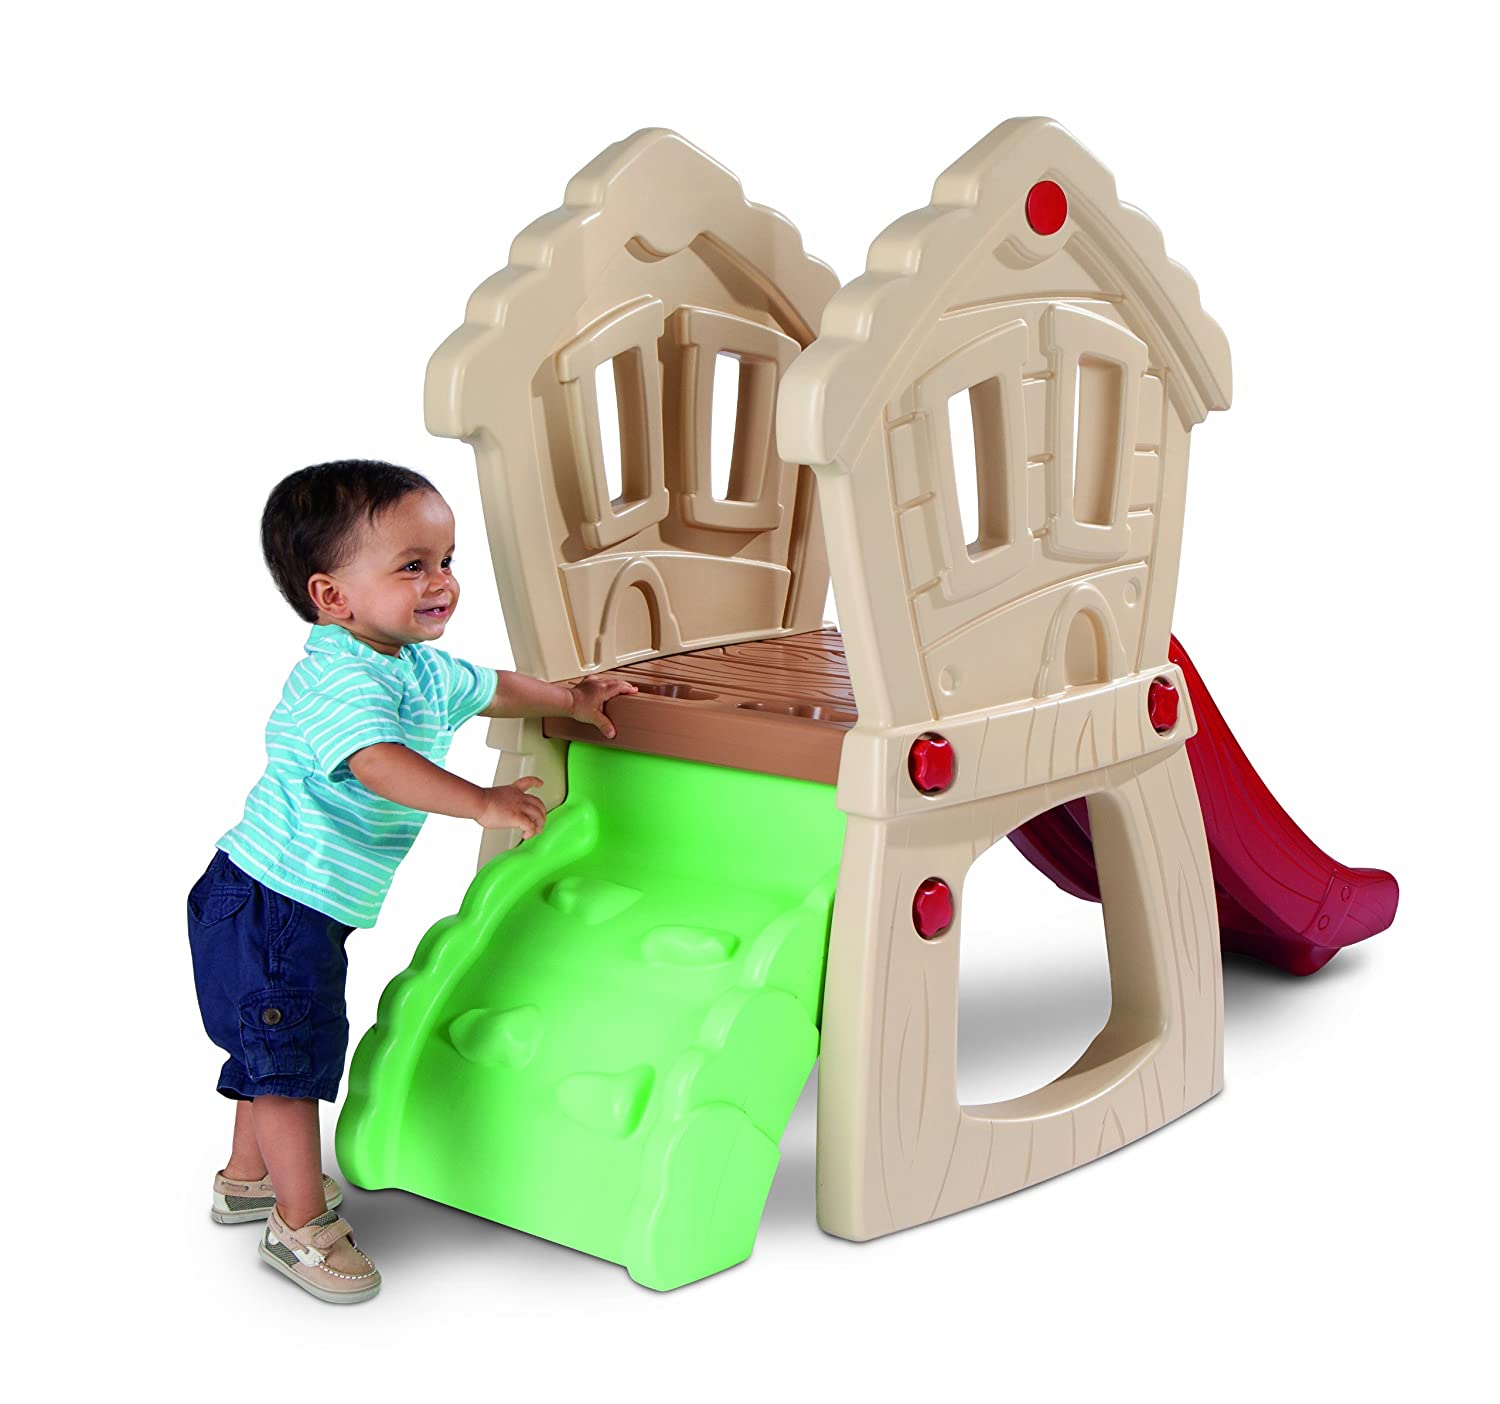 Amazon Little Tikes Hide and Seek Climber Toys & Games